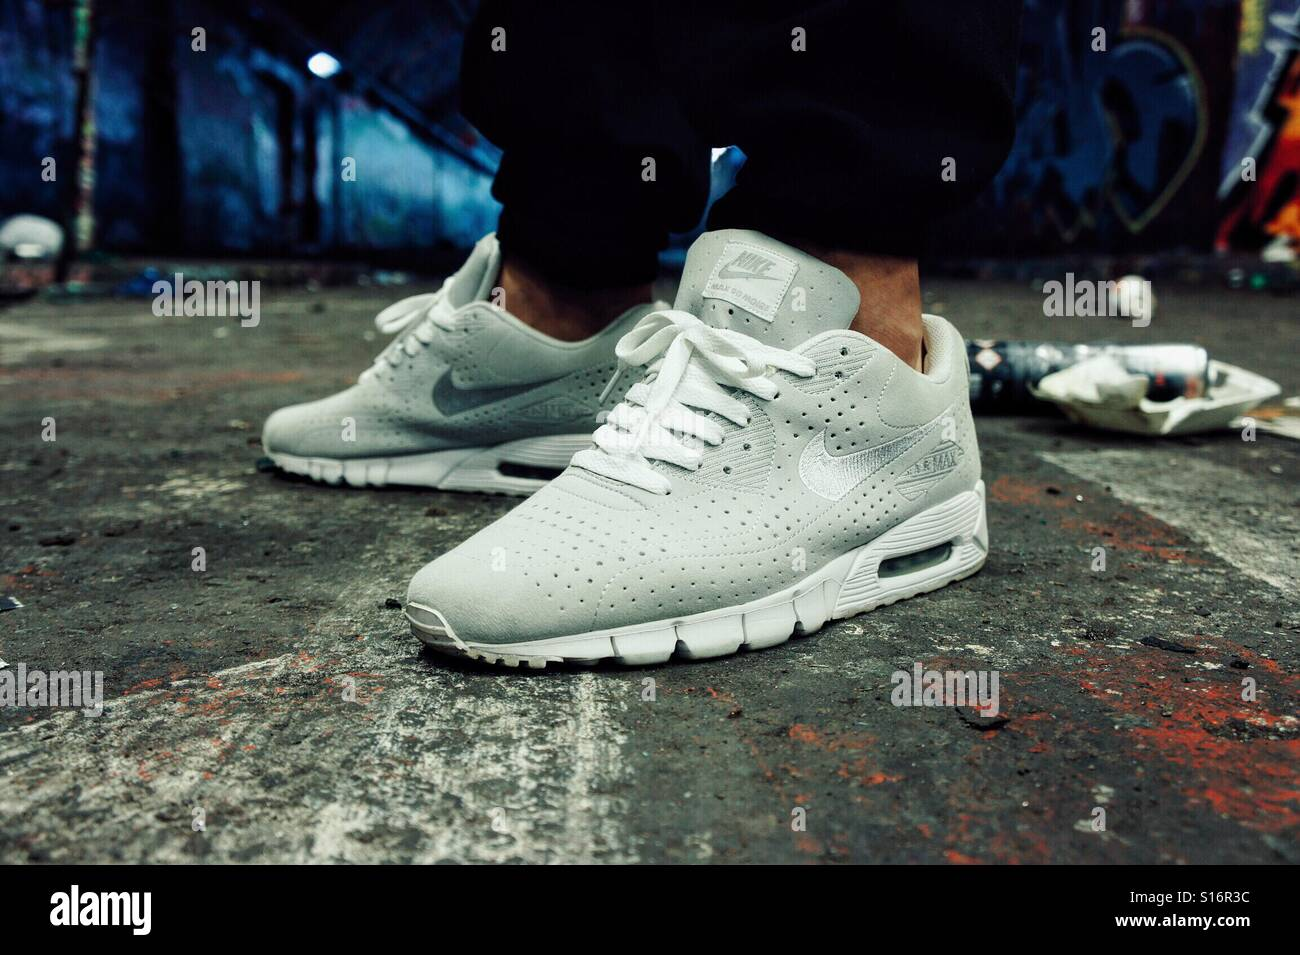 Nike air max 90 current Moire Stock Photo: 310551120 Alamy